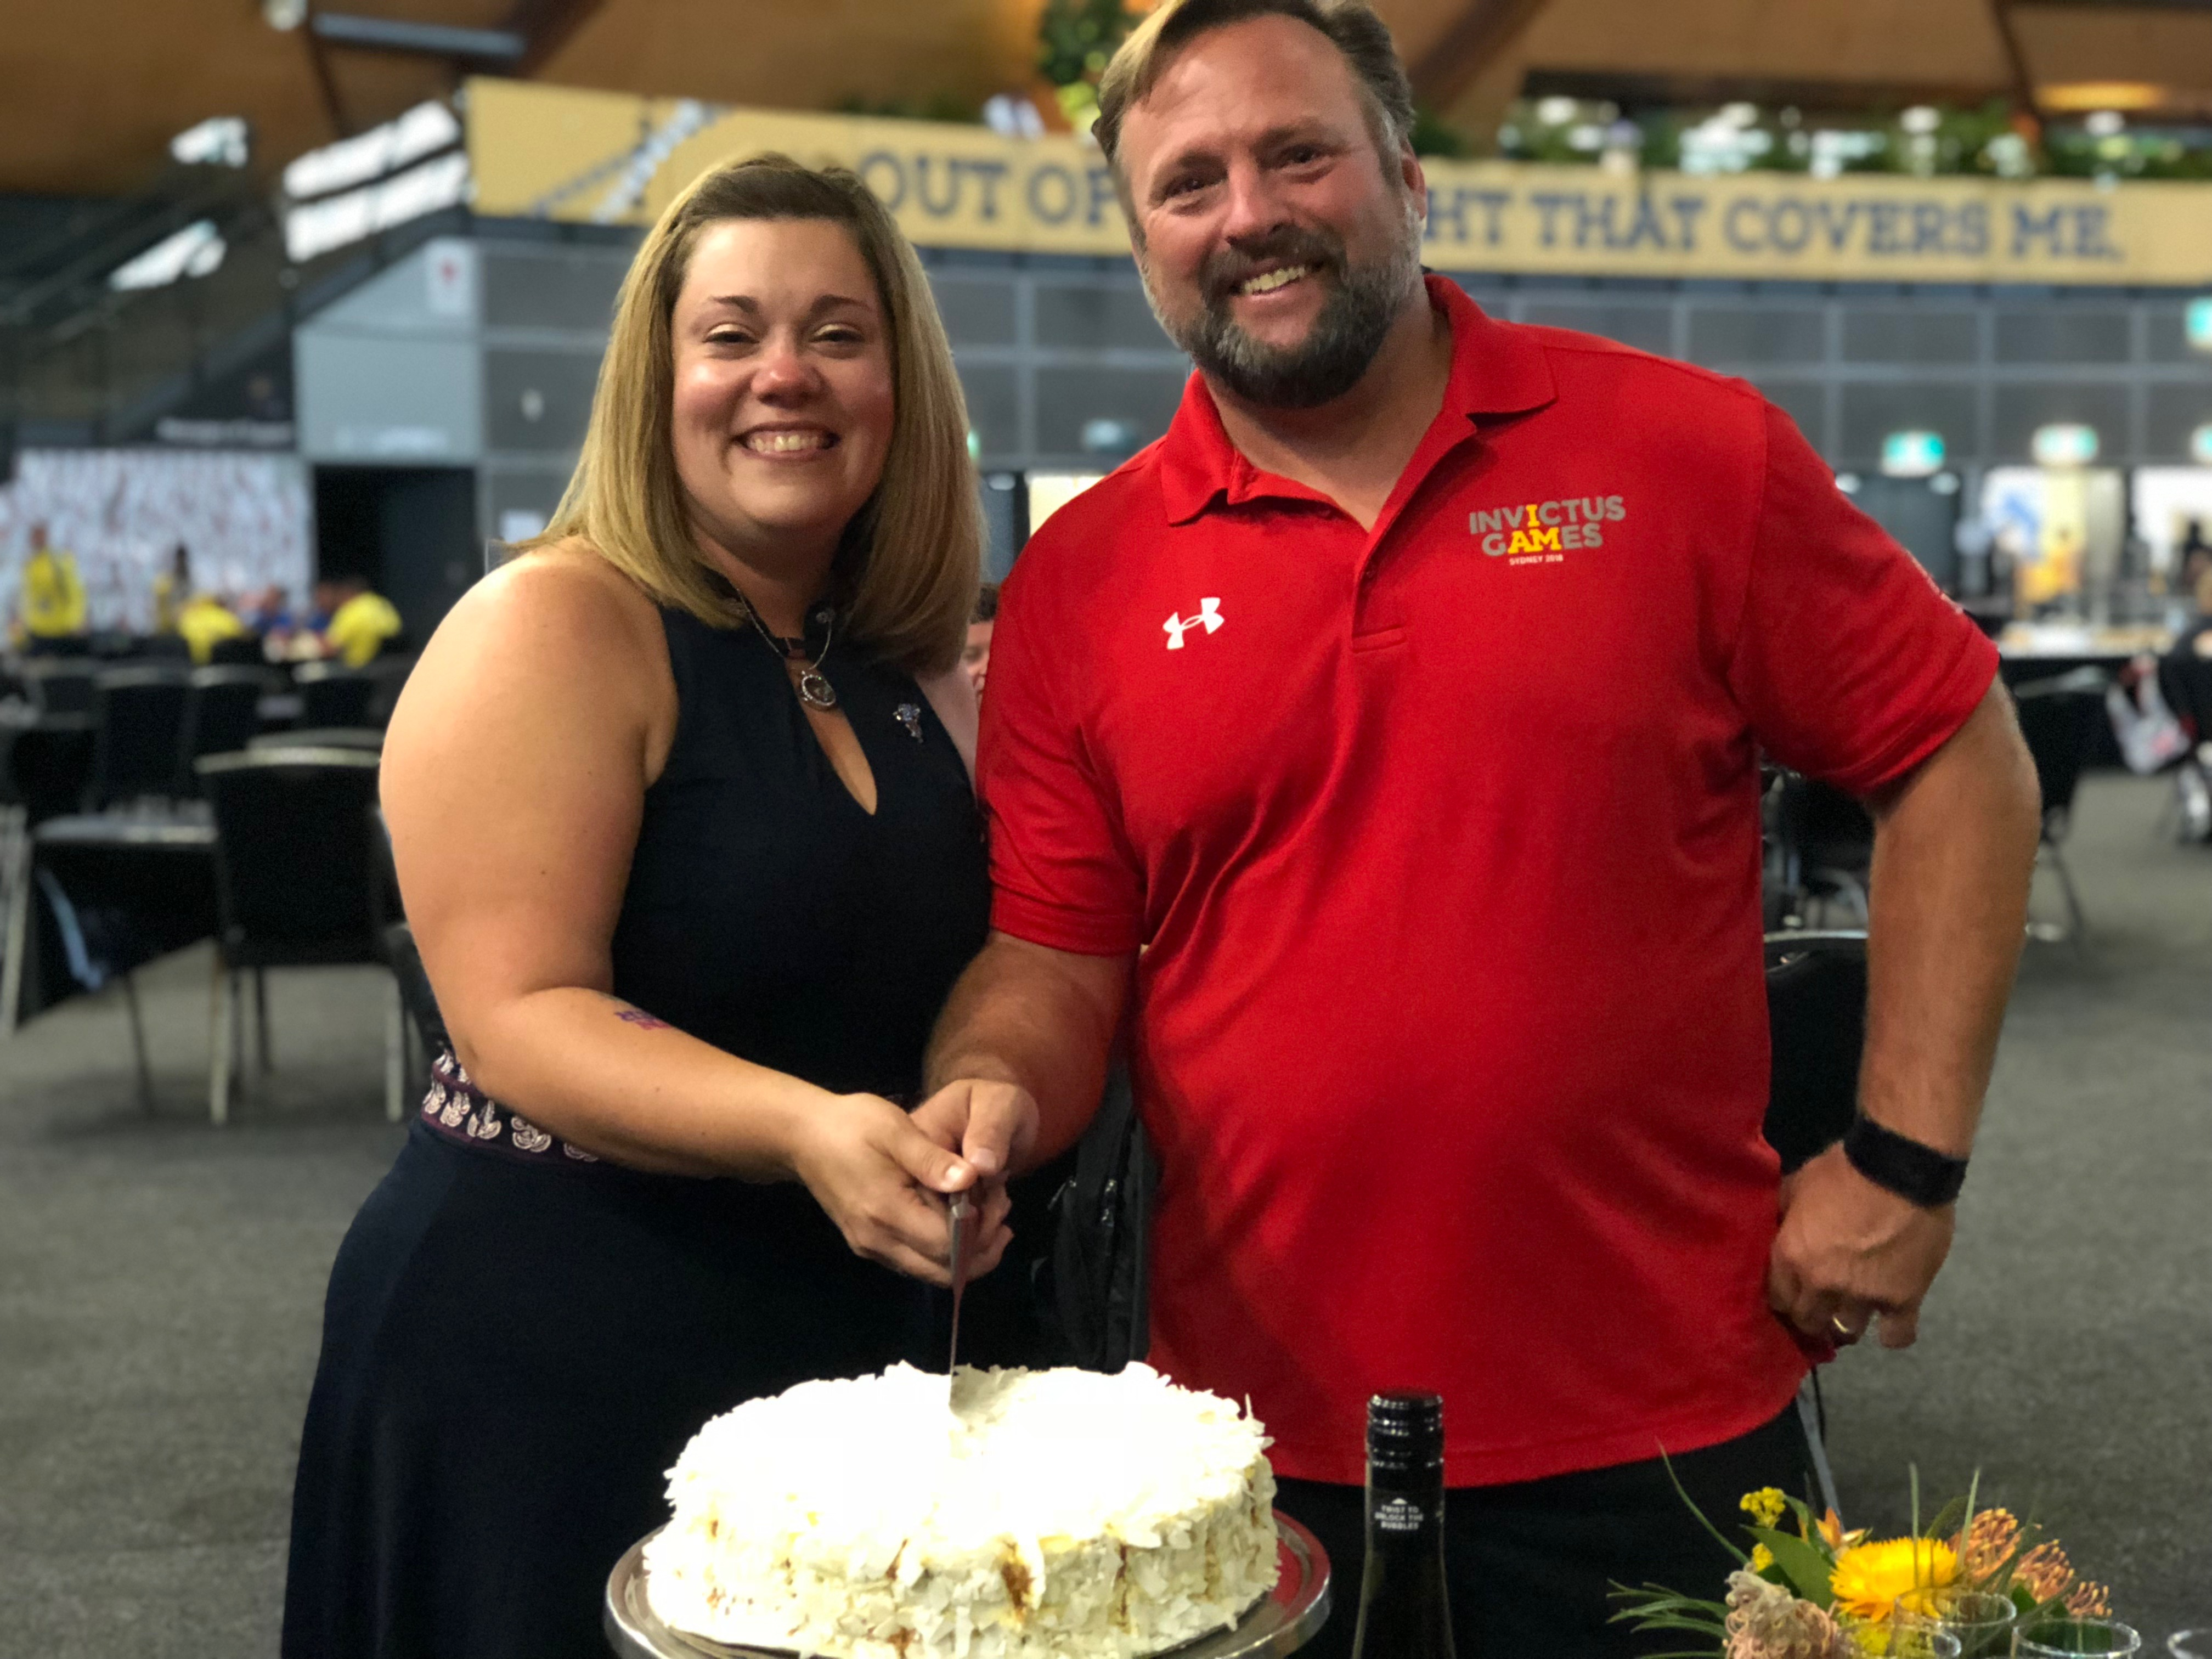 Invictus Games 2018: Wedding – Dean & Gailynne